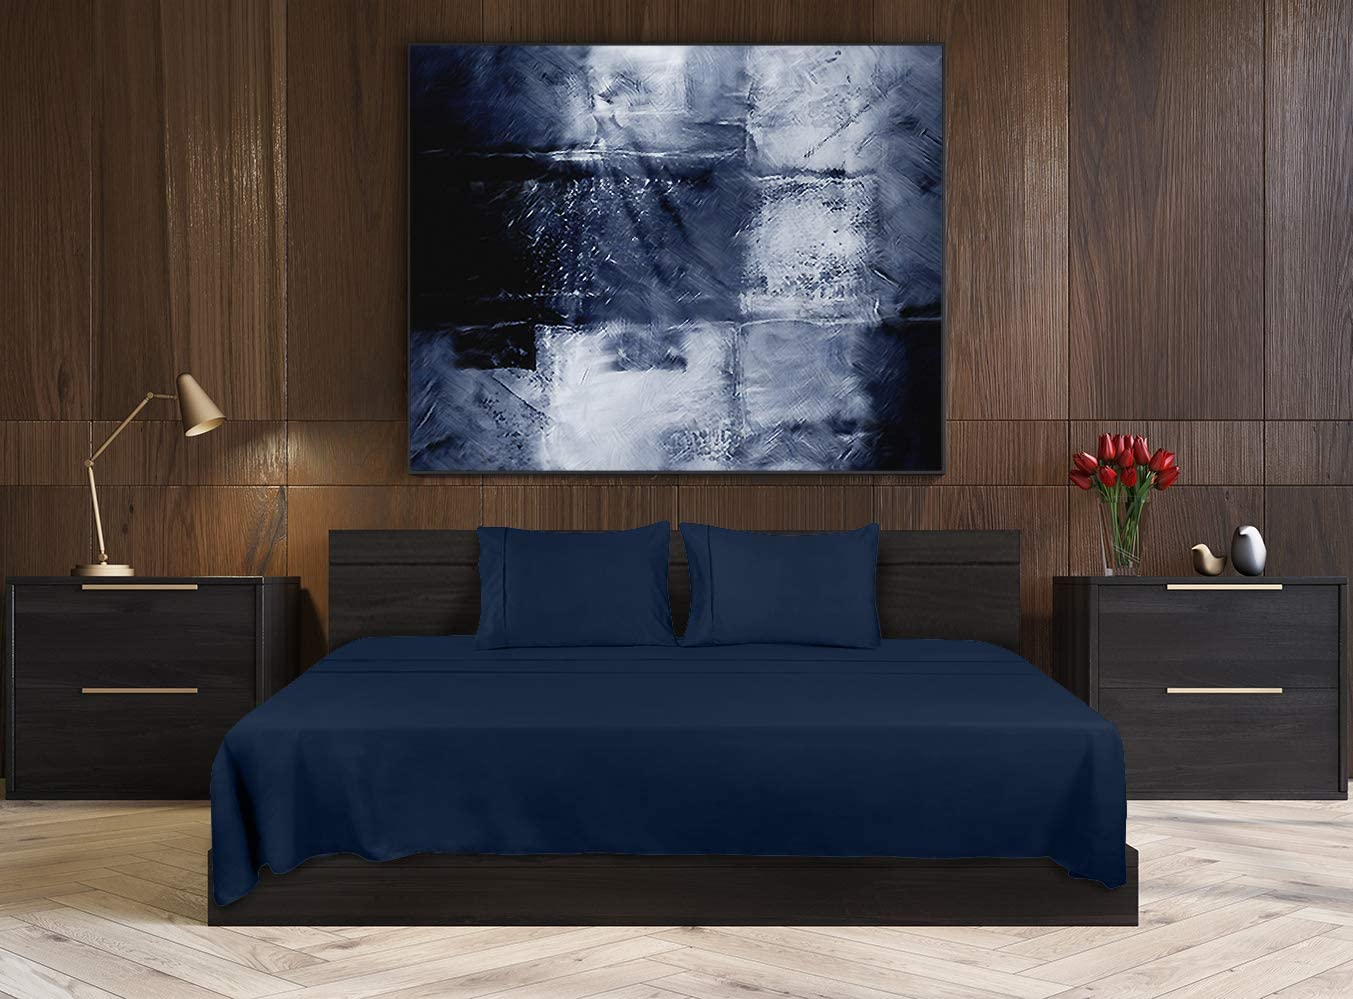 Utopia Bedding Bed Sheet Set - 4 Piece Queen Bedding - Soft Brushed Microfiber Fabric - Shrinkage & Fade Resistant - Easy Care (Queen, Navy): Home & Kitchen